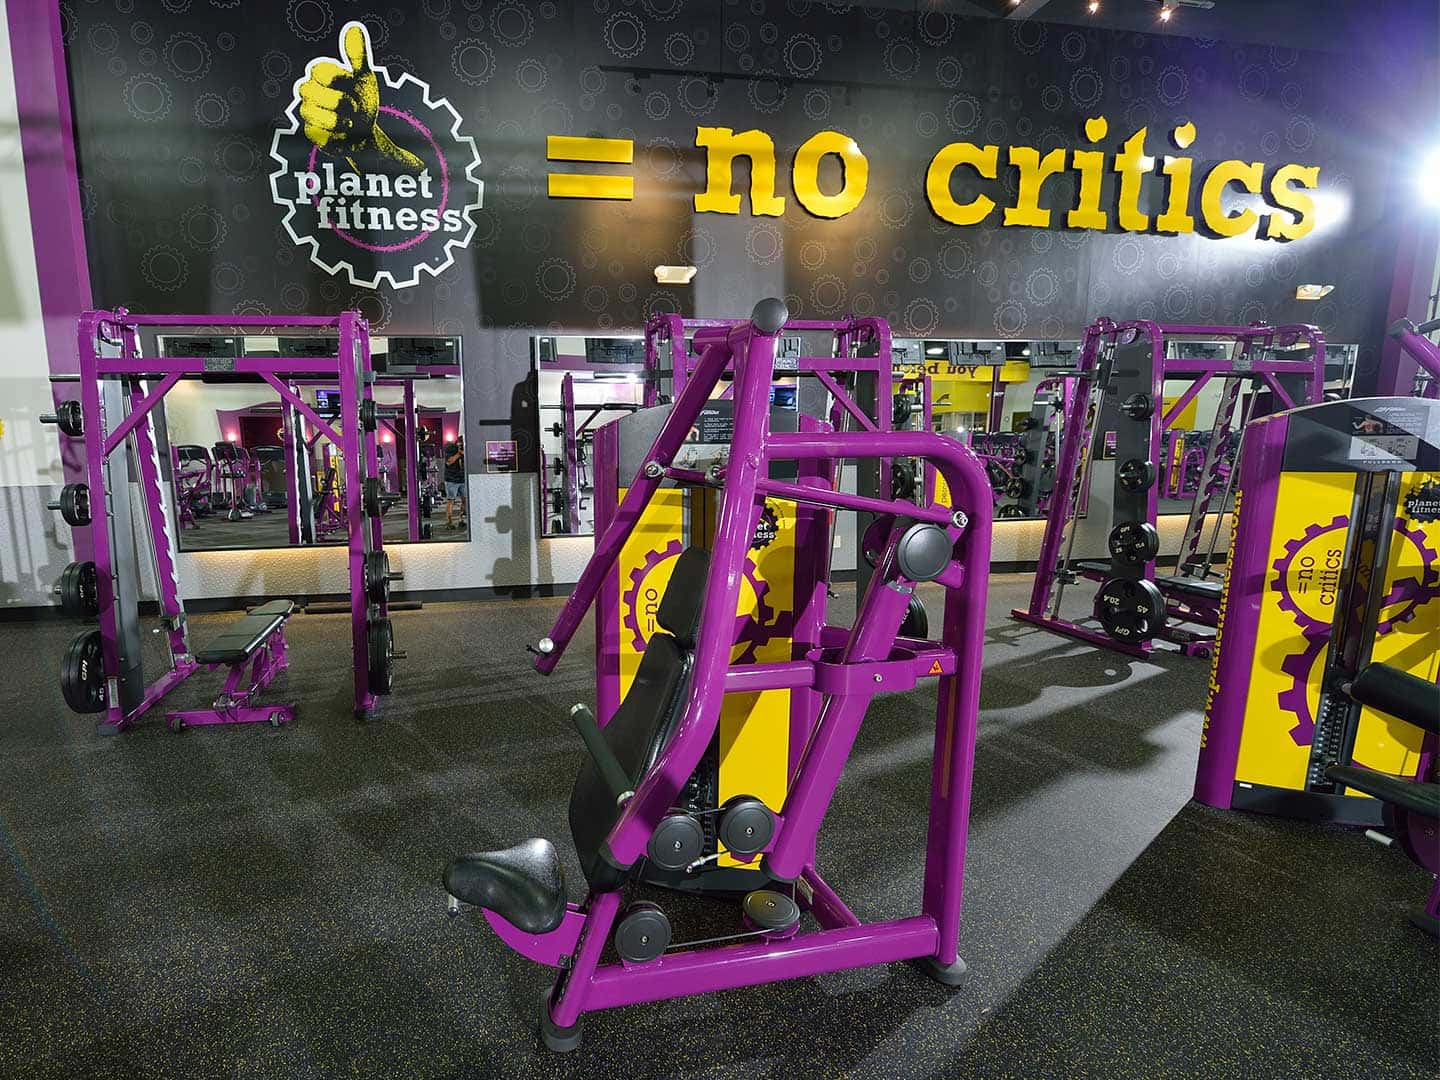 Planet Fitness - cut letters